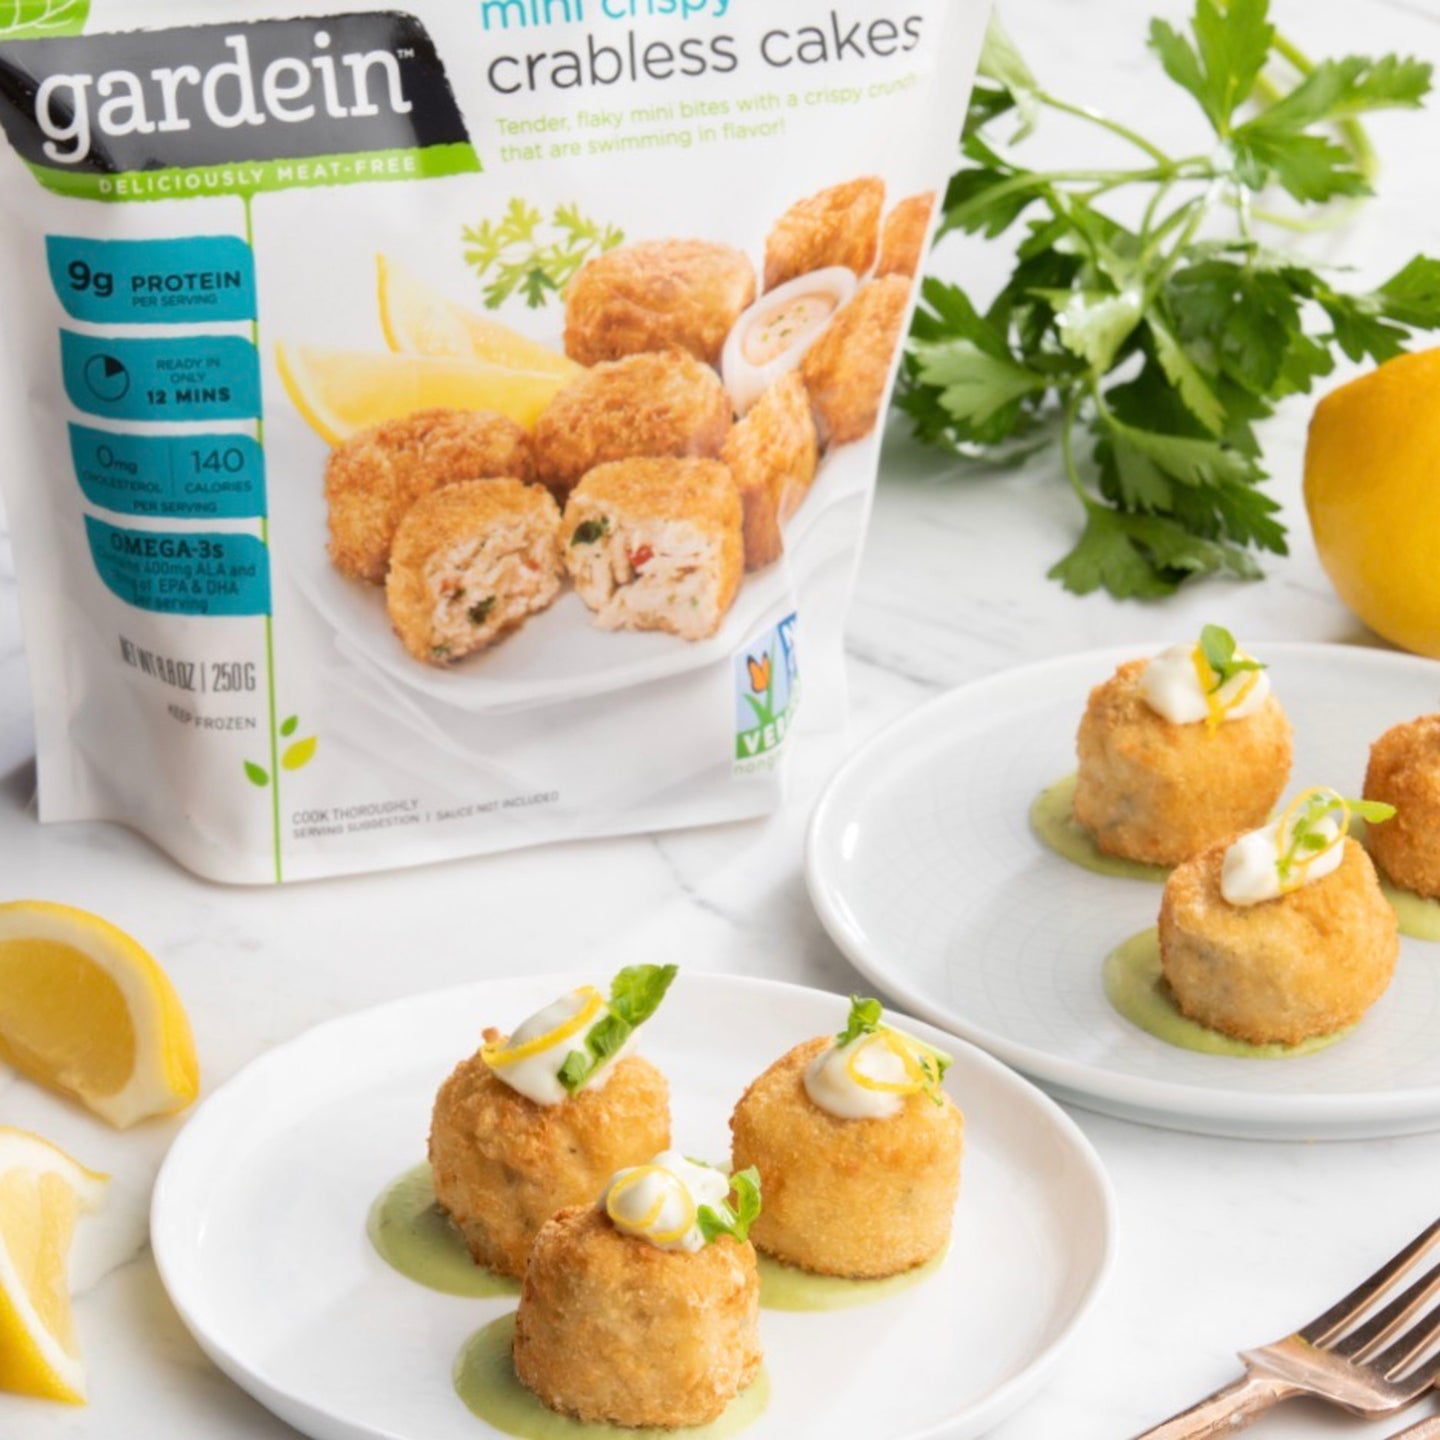 crabless-cake-plant-based-gardein-online-grocery-delivery-singapore-thenewgrocer